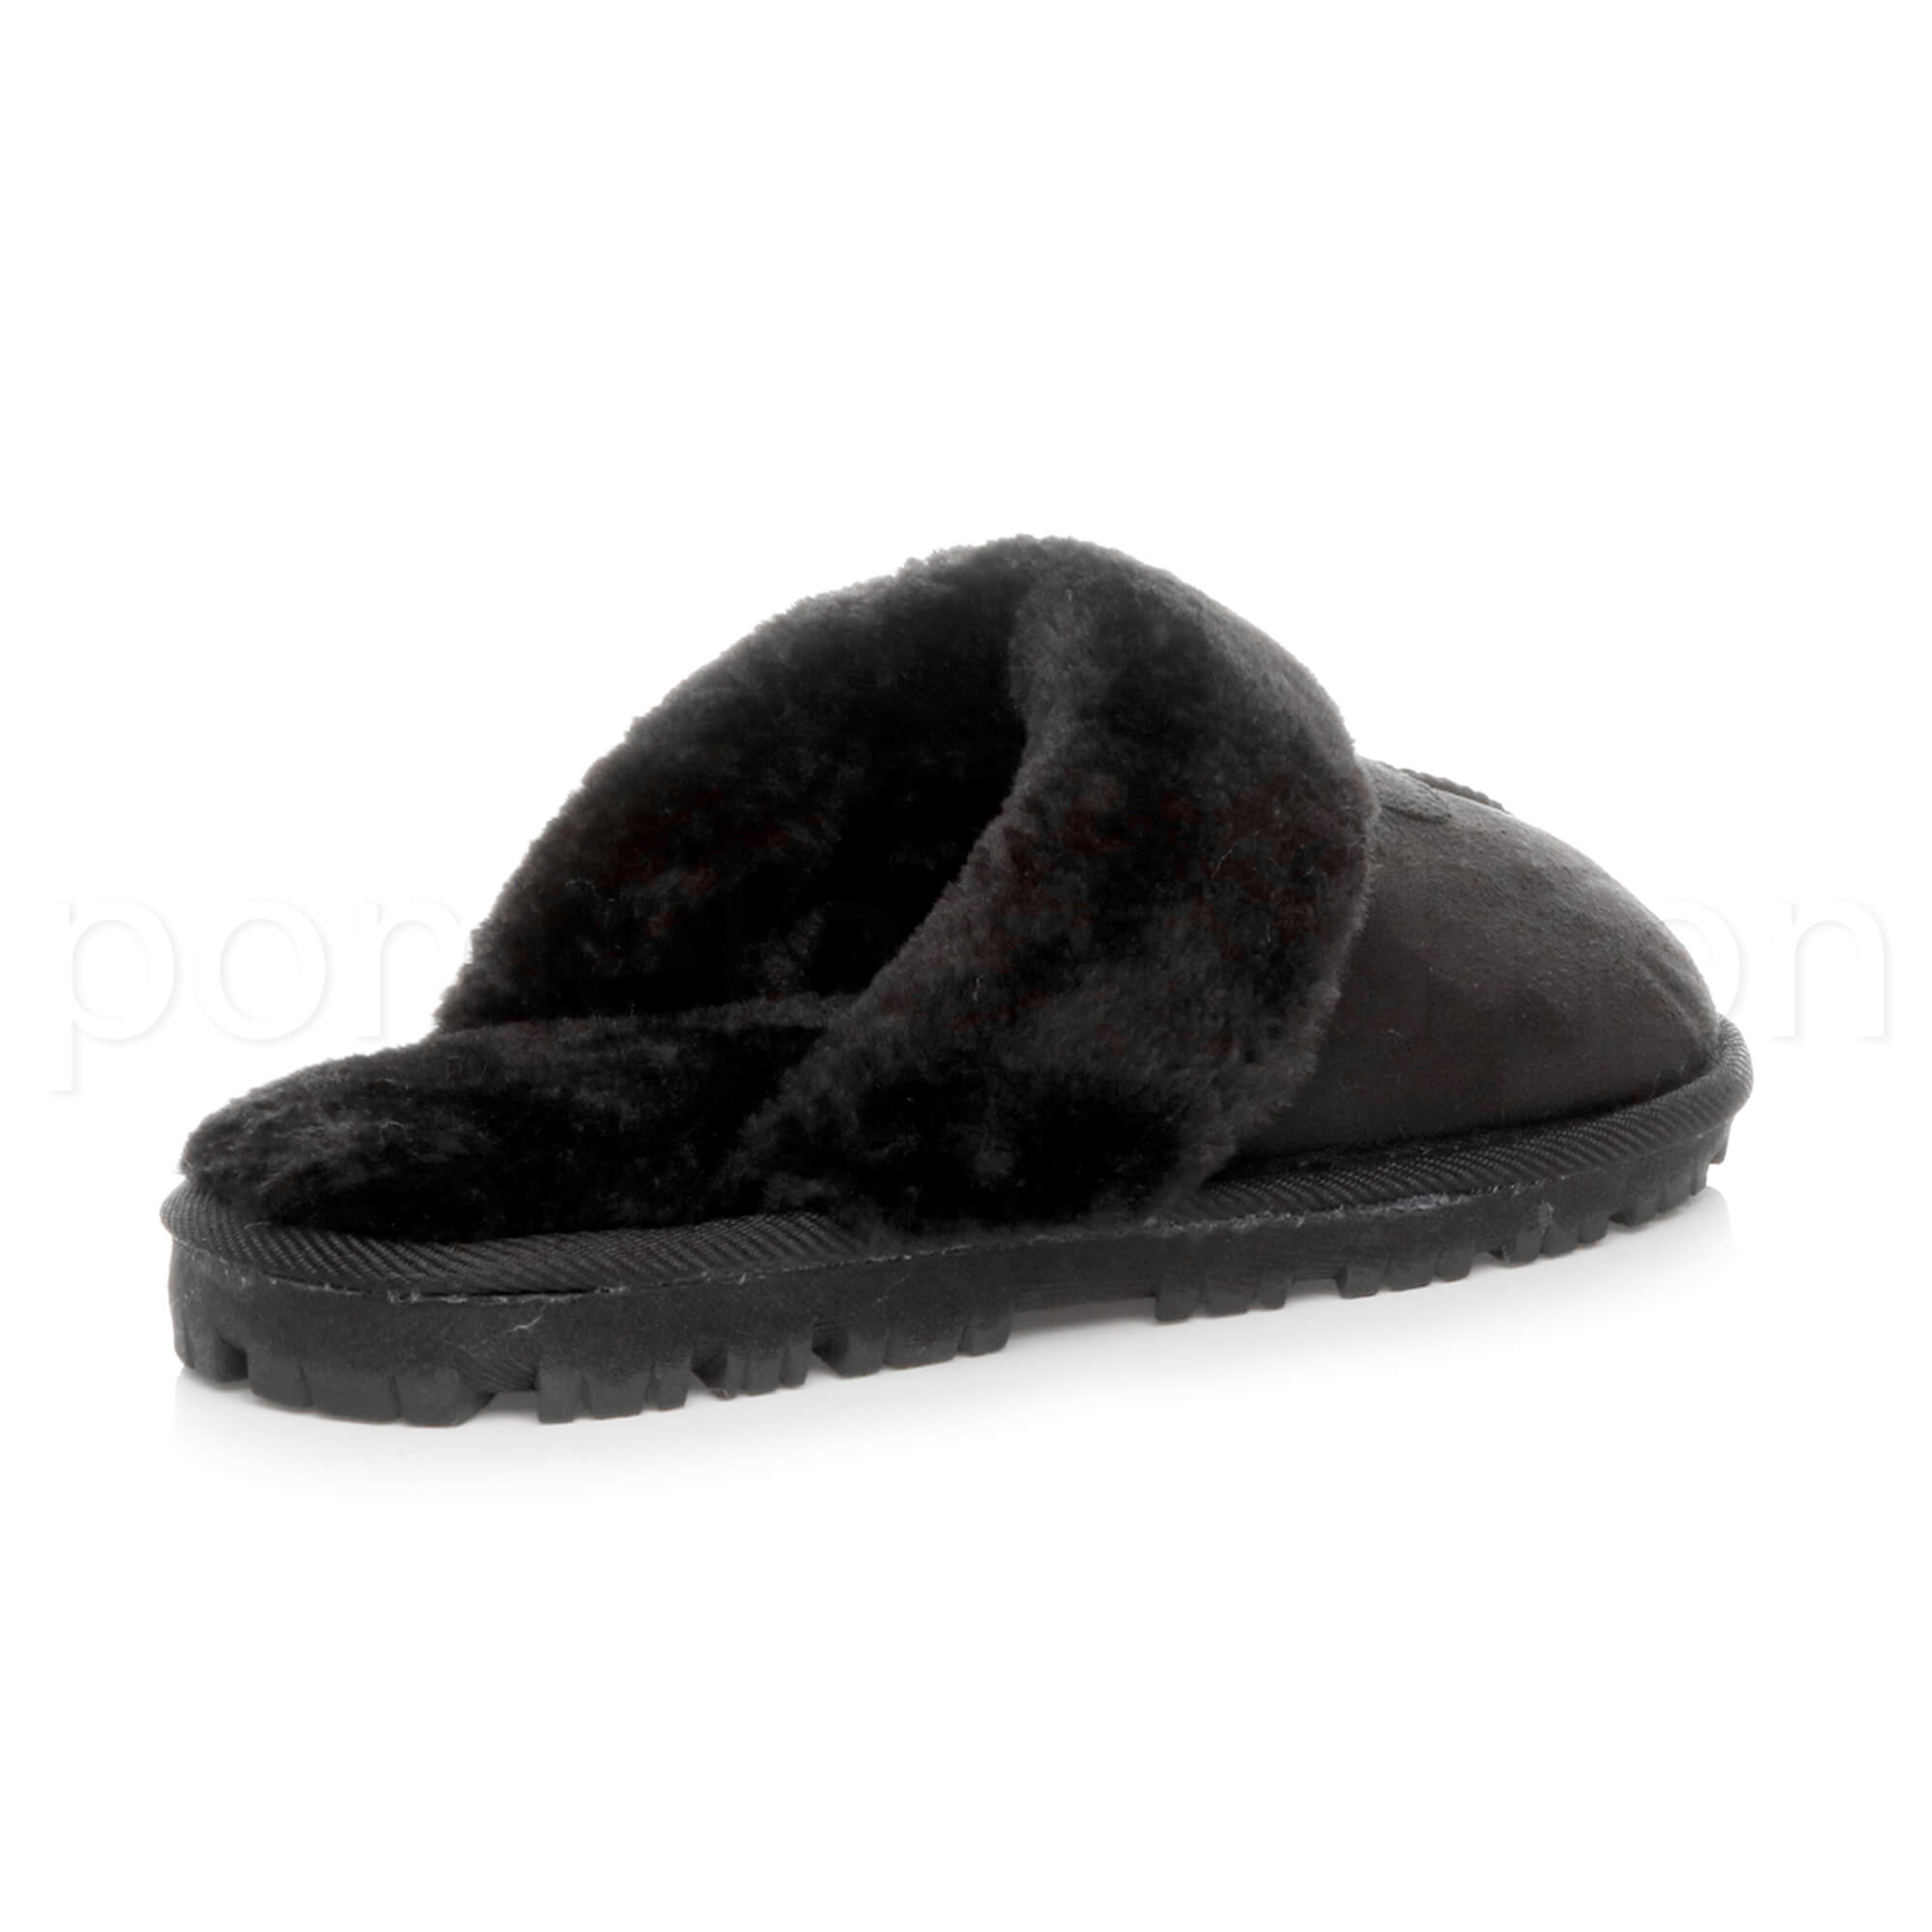 WOMENS-LADIES-FLAT-FUR-LINED-COMFORTABLE-WINTER-MULES-SLIPPERS-HOUSE-SHOES-SIZE thumbnail 19